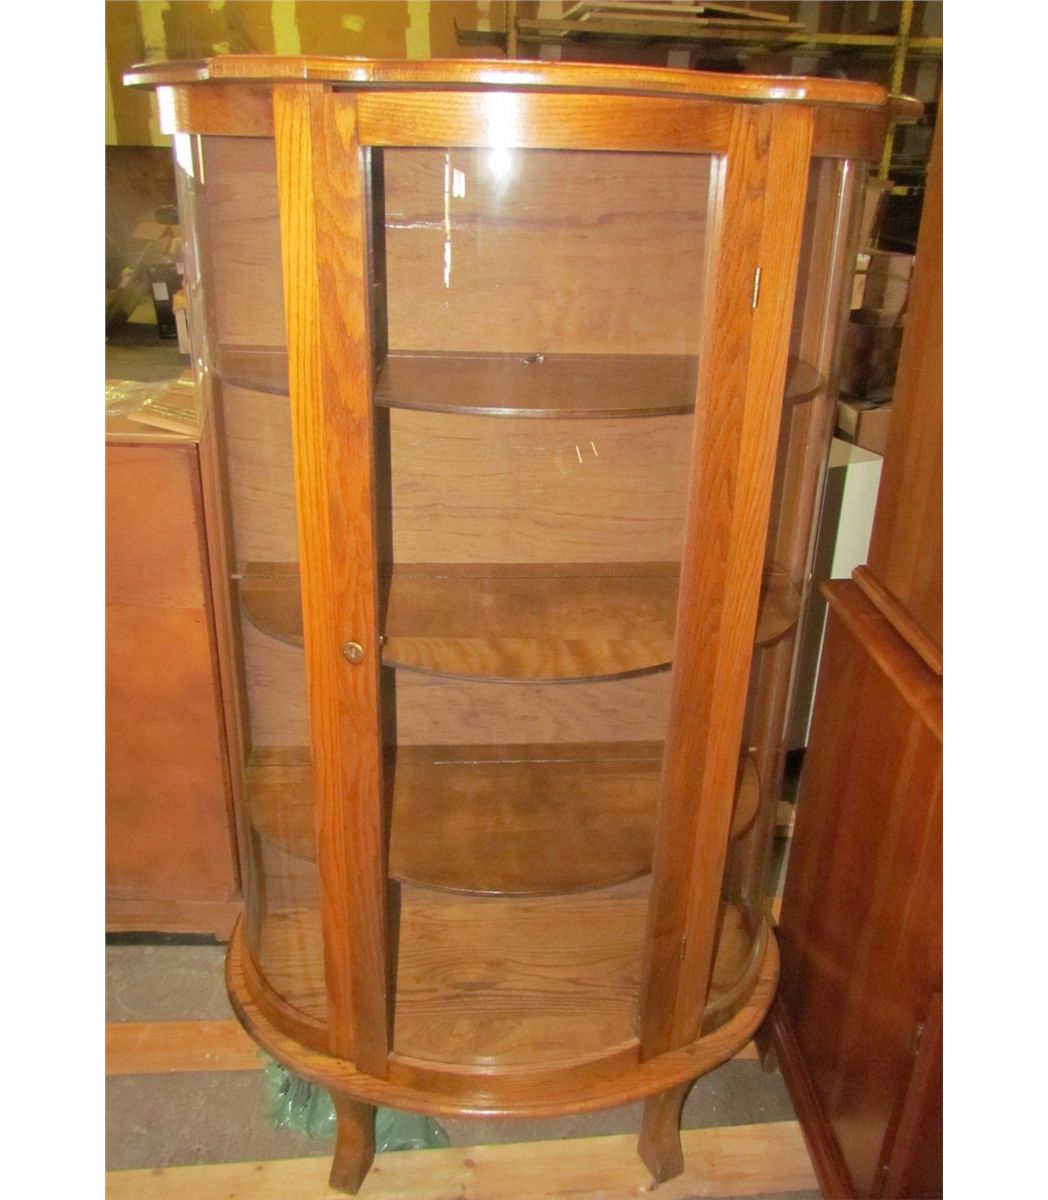 Image 1 Antique Cherry Wooden Curio Cabinet With Glass Doors And Original Skeleton Key